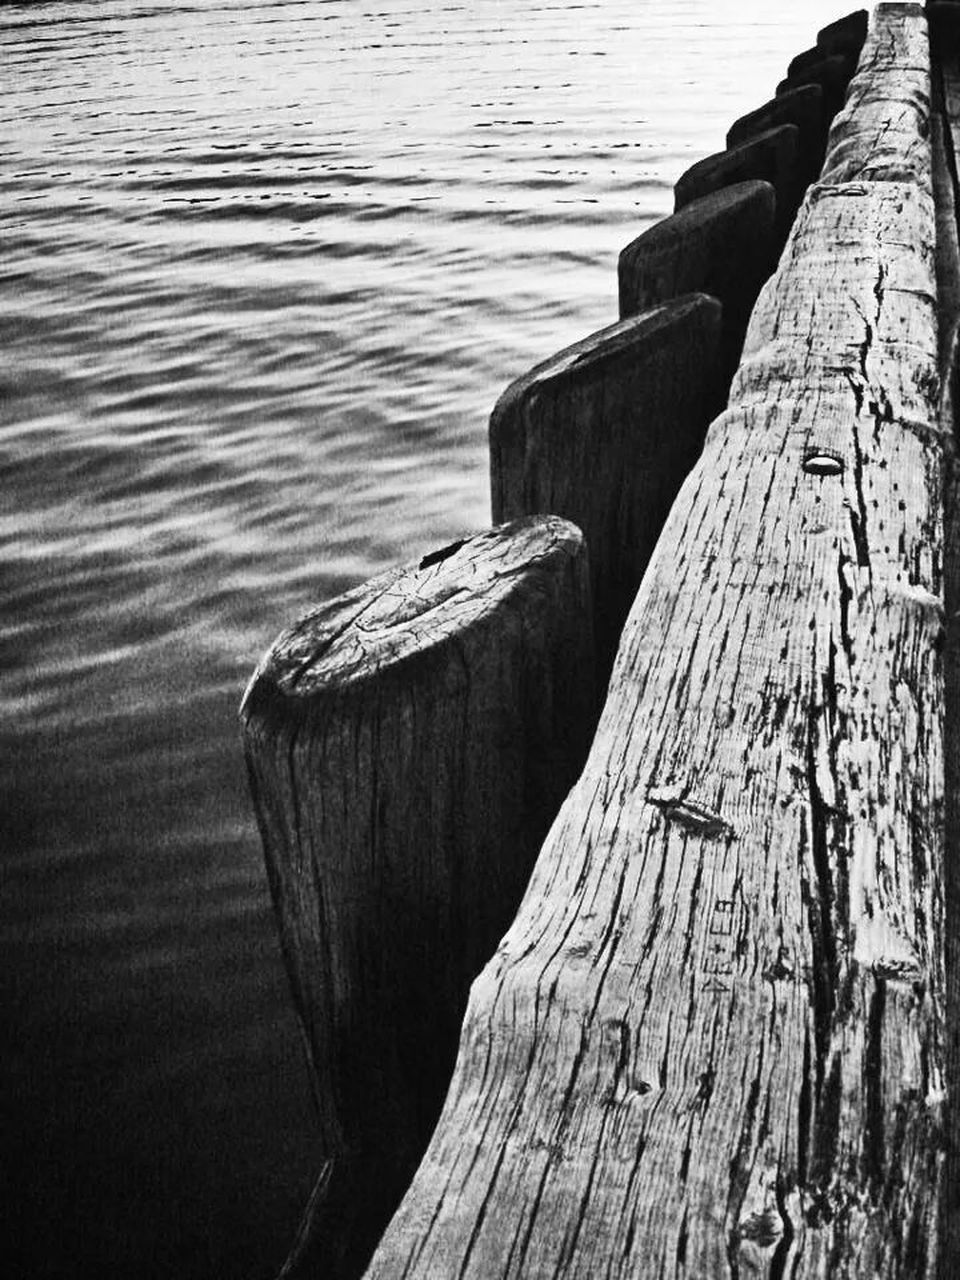 water, wood - material, lake, day, nature, no people, pier, outdoors, jetty, textured, tree trunk, wooden post, rippled, cleat, close-up, beauty in nature